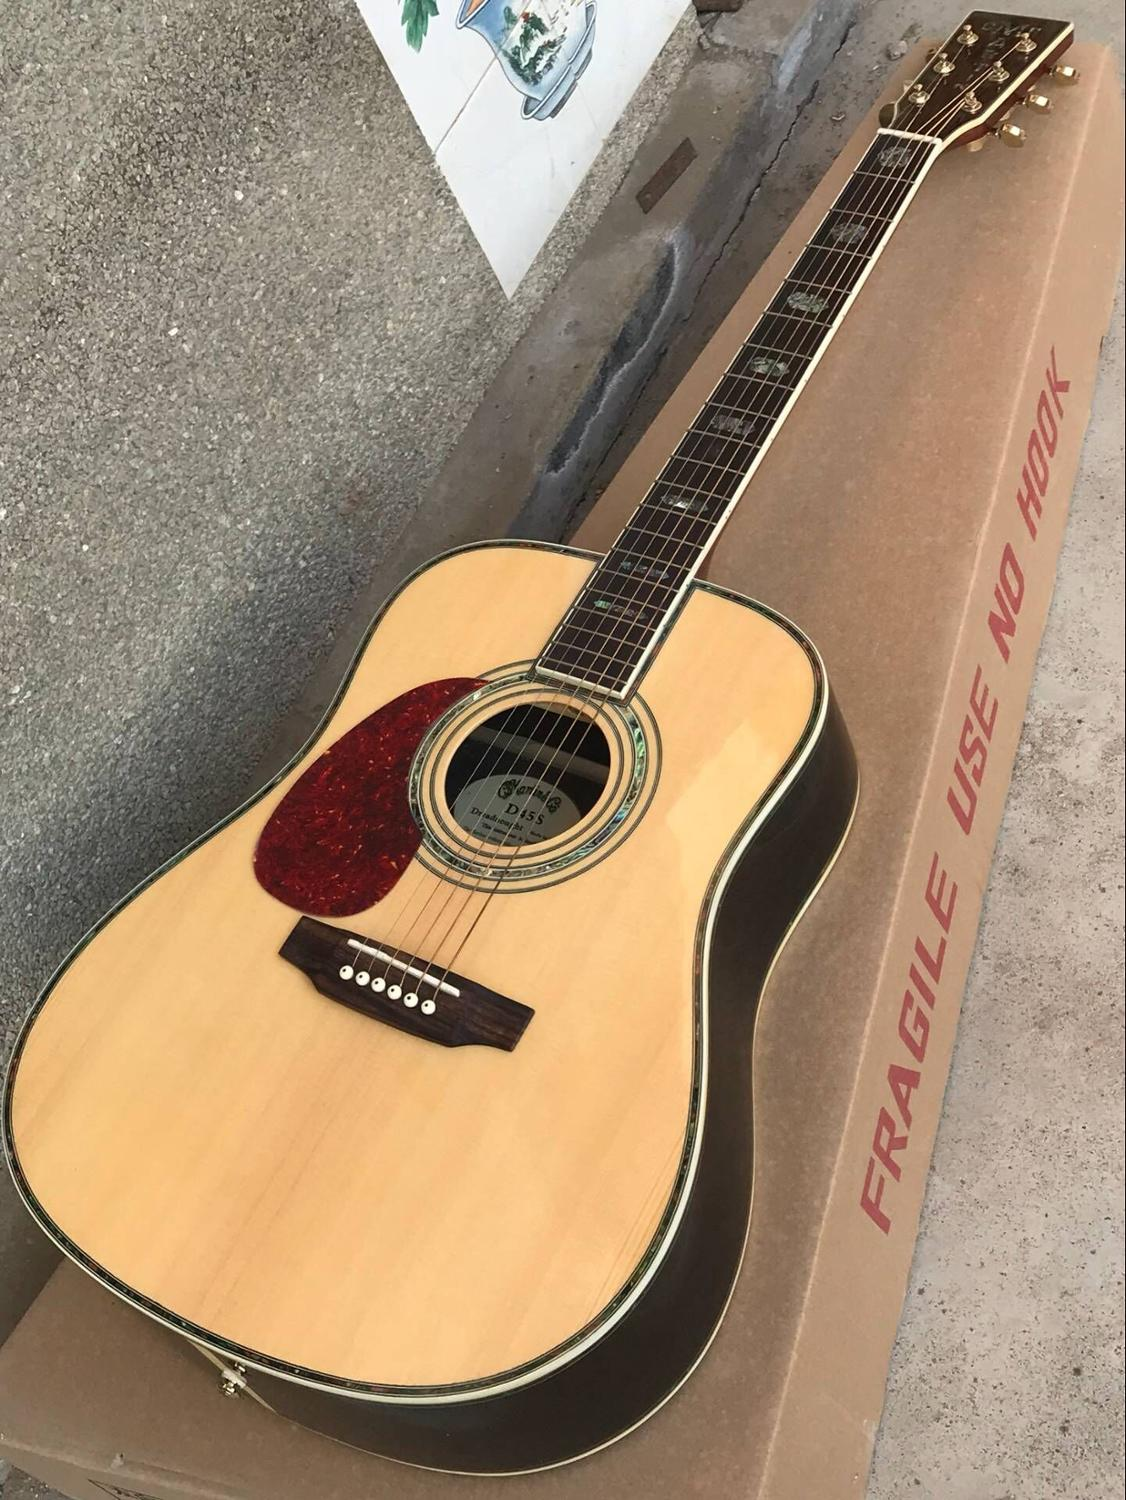 natural Solid Spruce top 41 inch Left hand classic acoustic Guitar D type 45 model 41 guitar Free shipping 8pai image